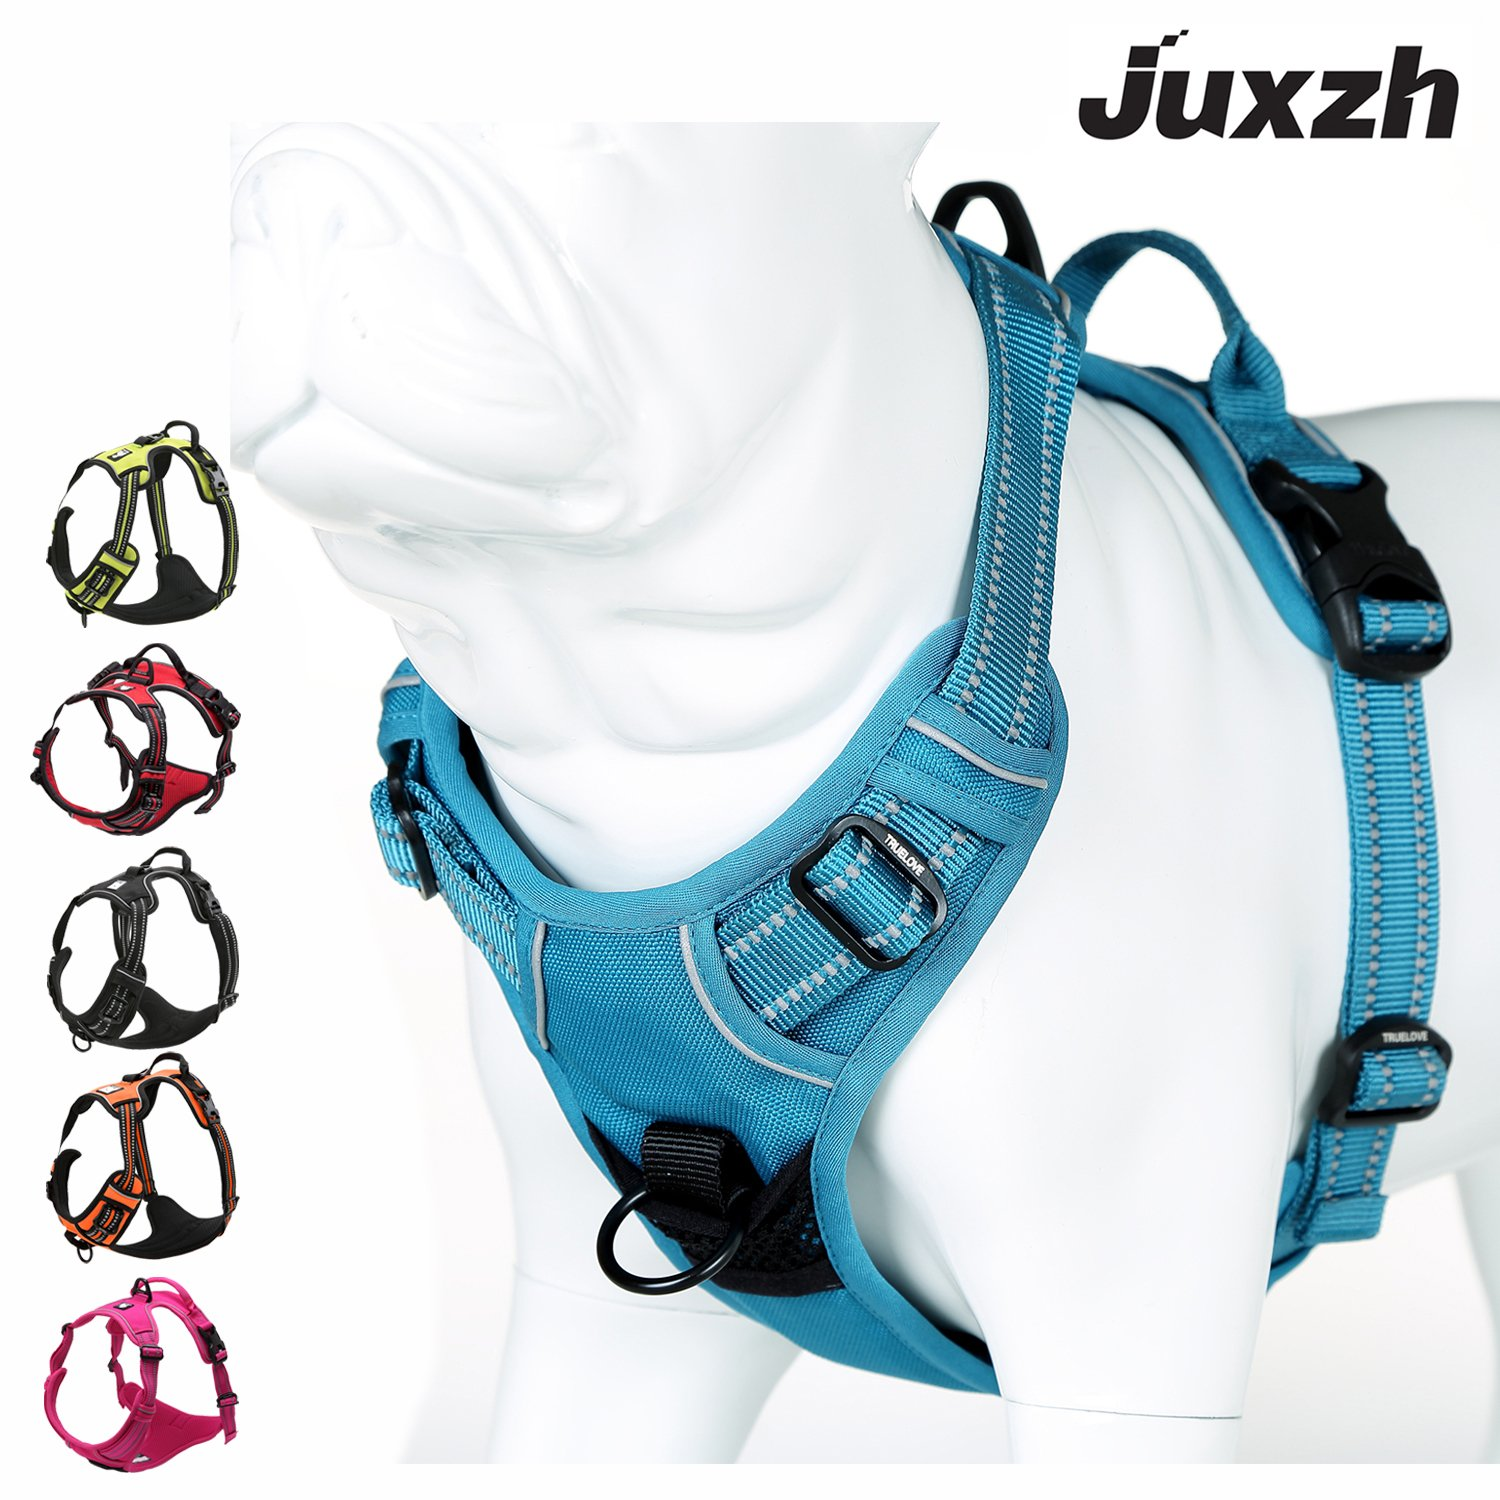 JUXZH Soft  Dog Harness .3M Reflective No Pull Harness with handle and Two Leash Attachments by juxzh